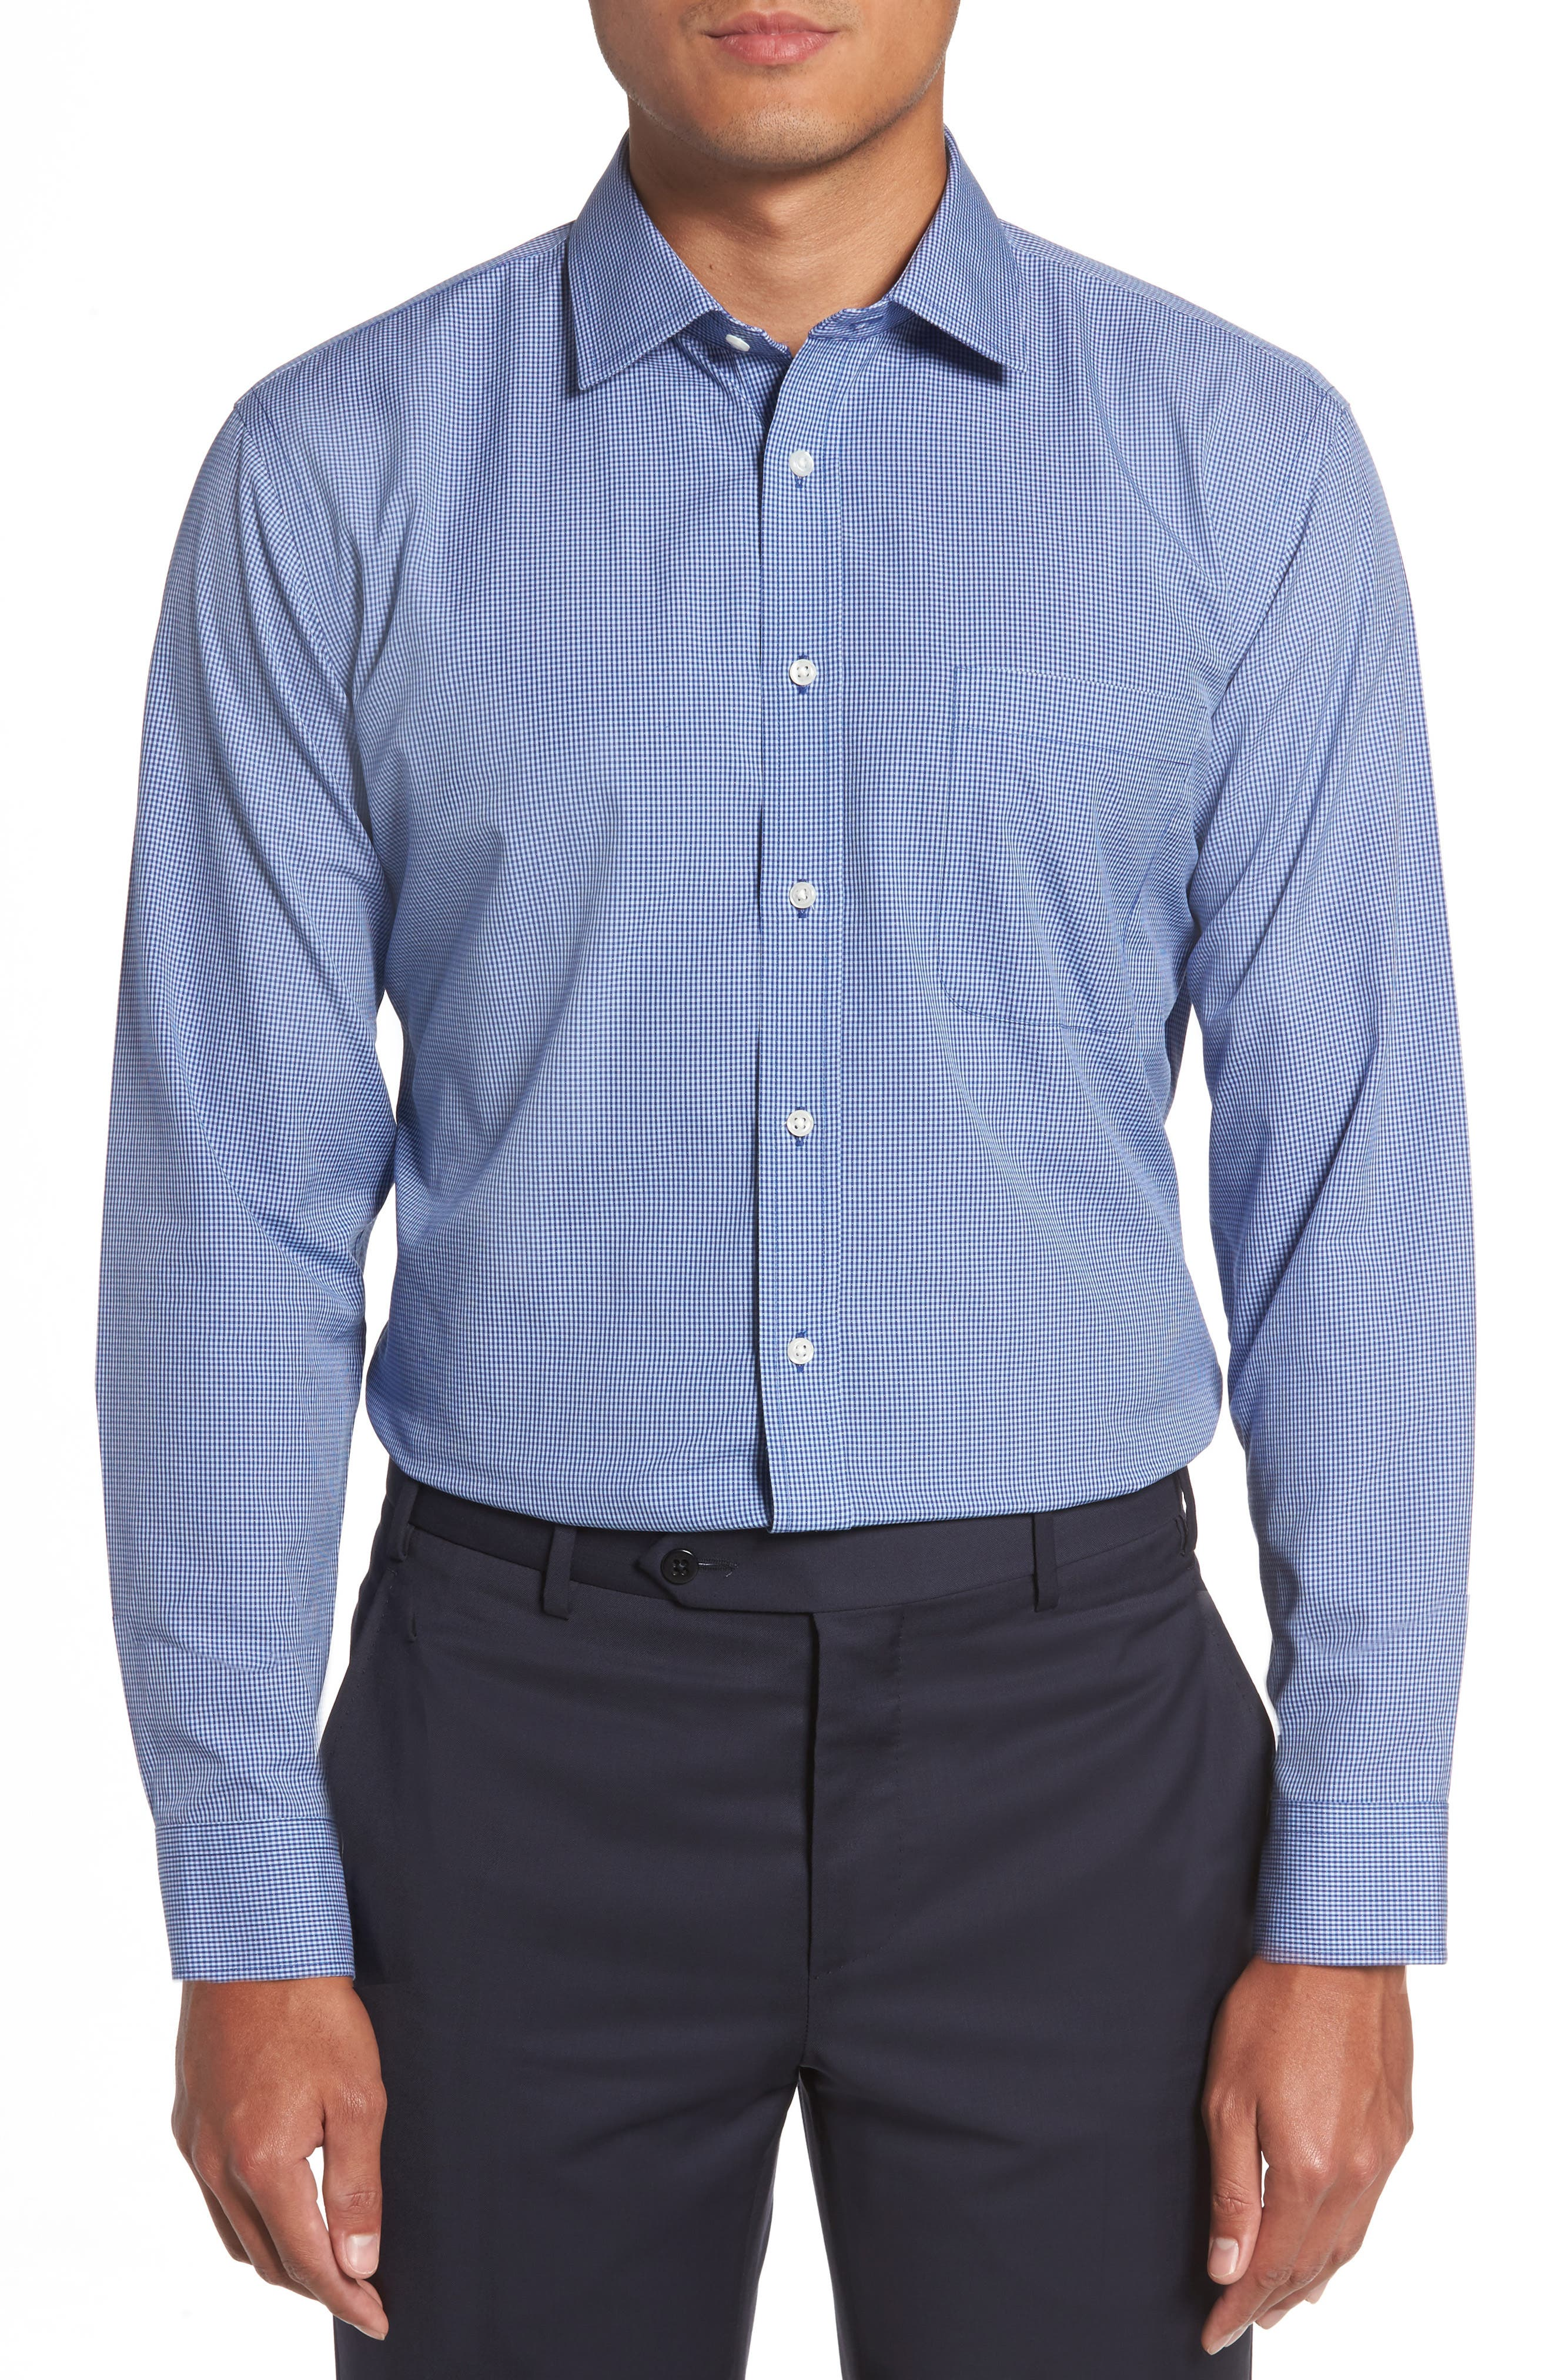 Smartcare<sup>™</sup> Trim Fit Check Dress Shirt,                             Main thumbnail 1, color,